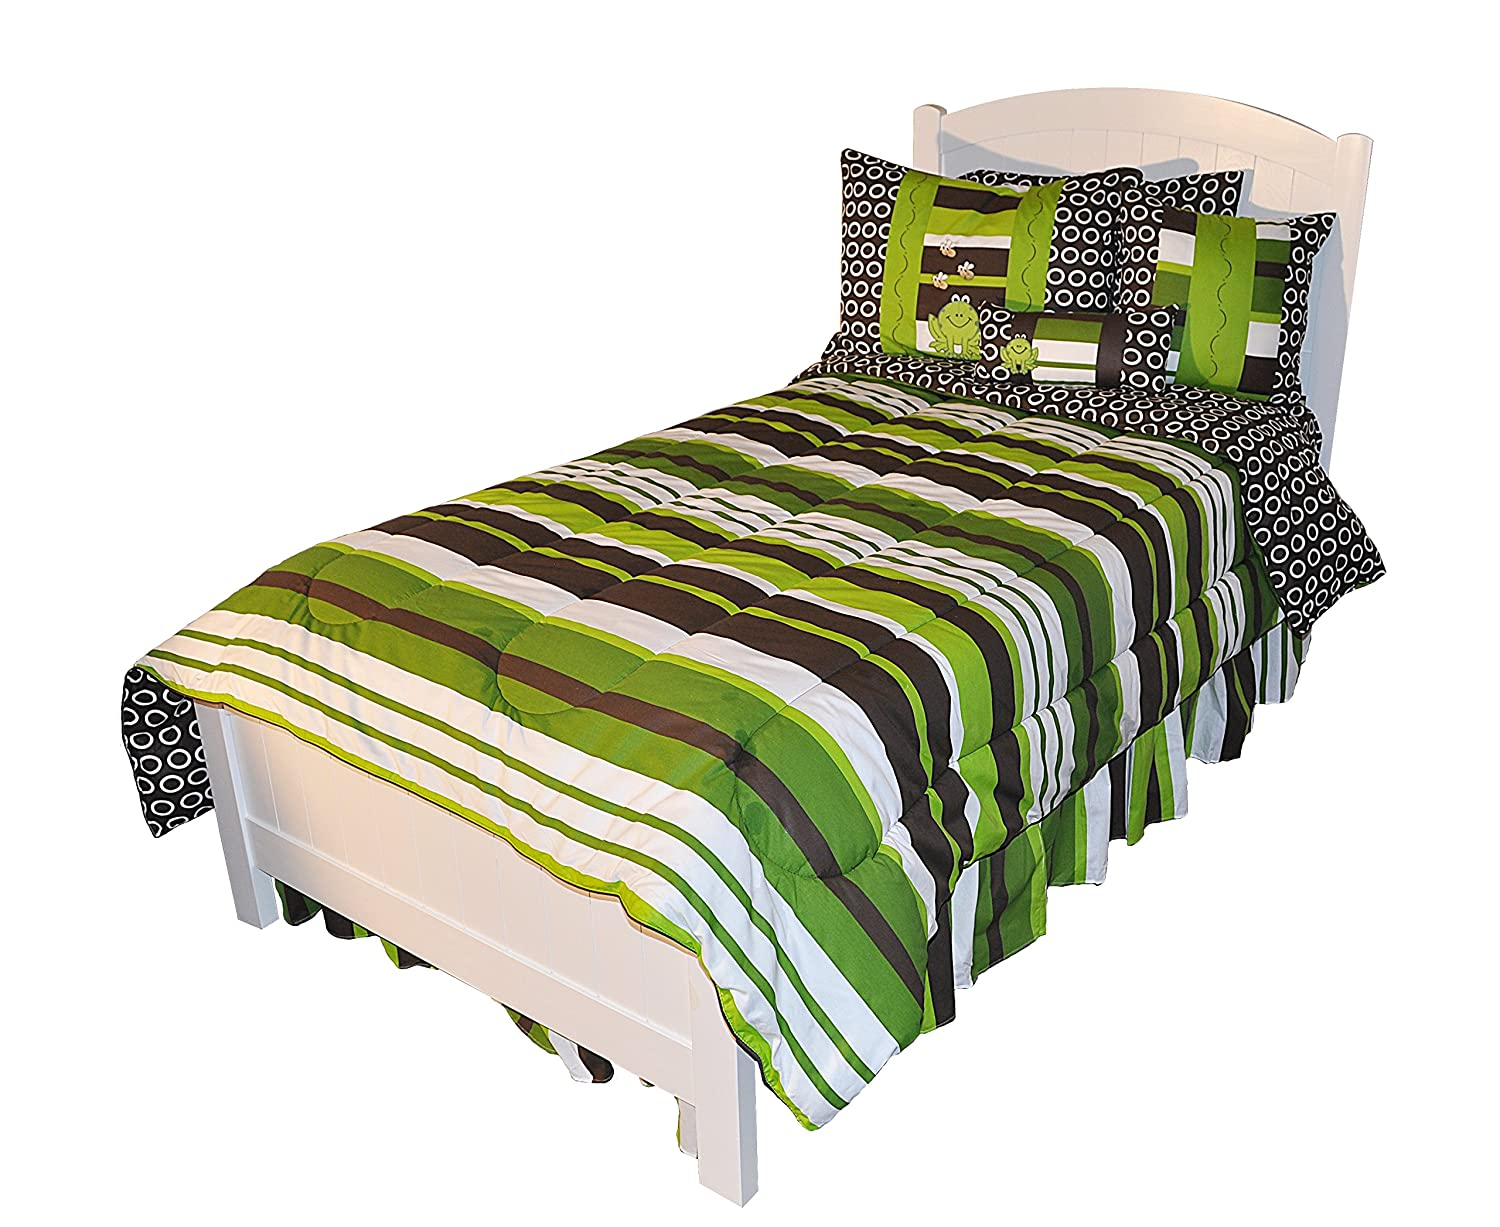 Beautiful Frog Bedroom Decor Ideas for Frog Lovers